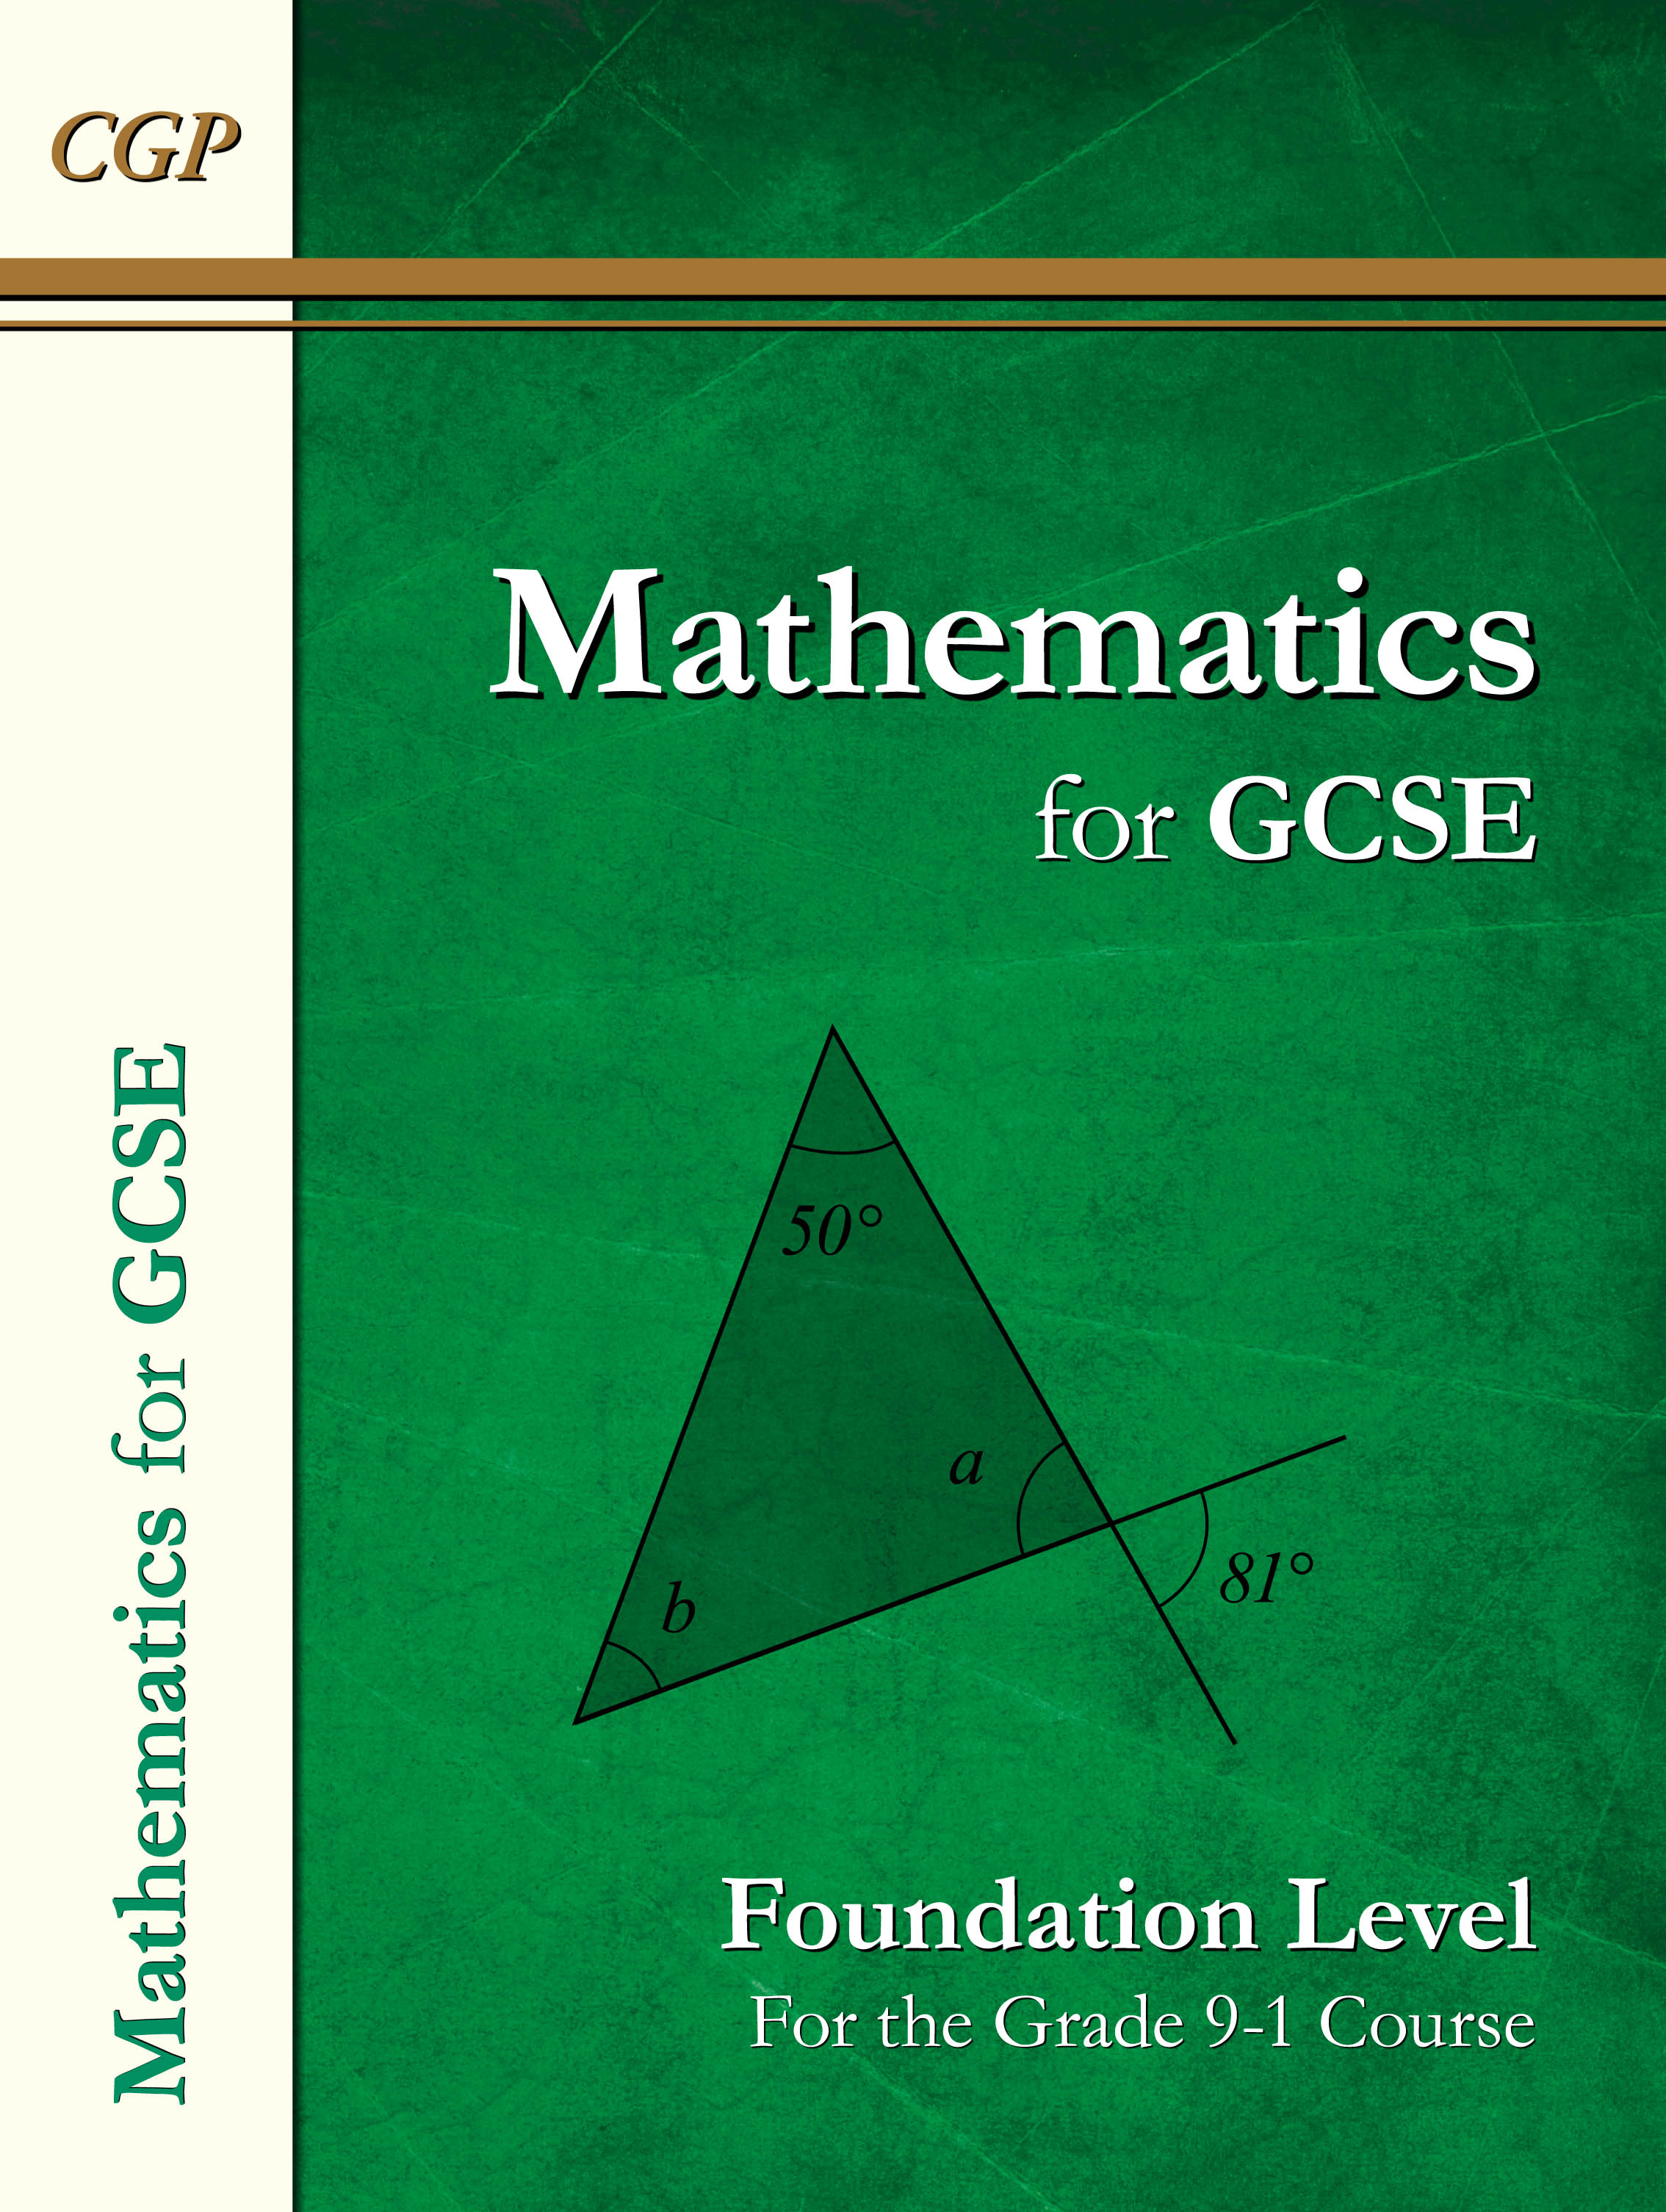 MFN42DK - New Maths for GCSE Textbook: Foundation (for the Grade 9-1 Course)